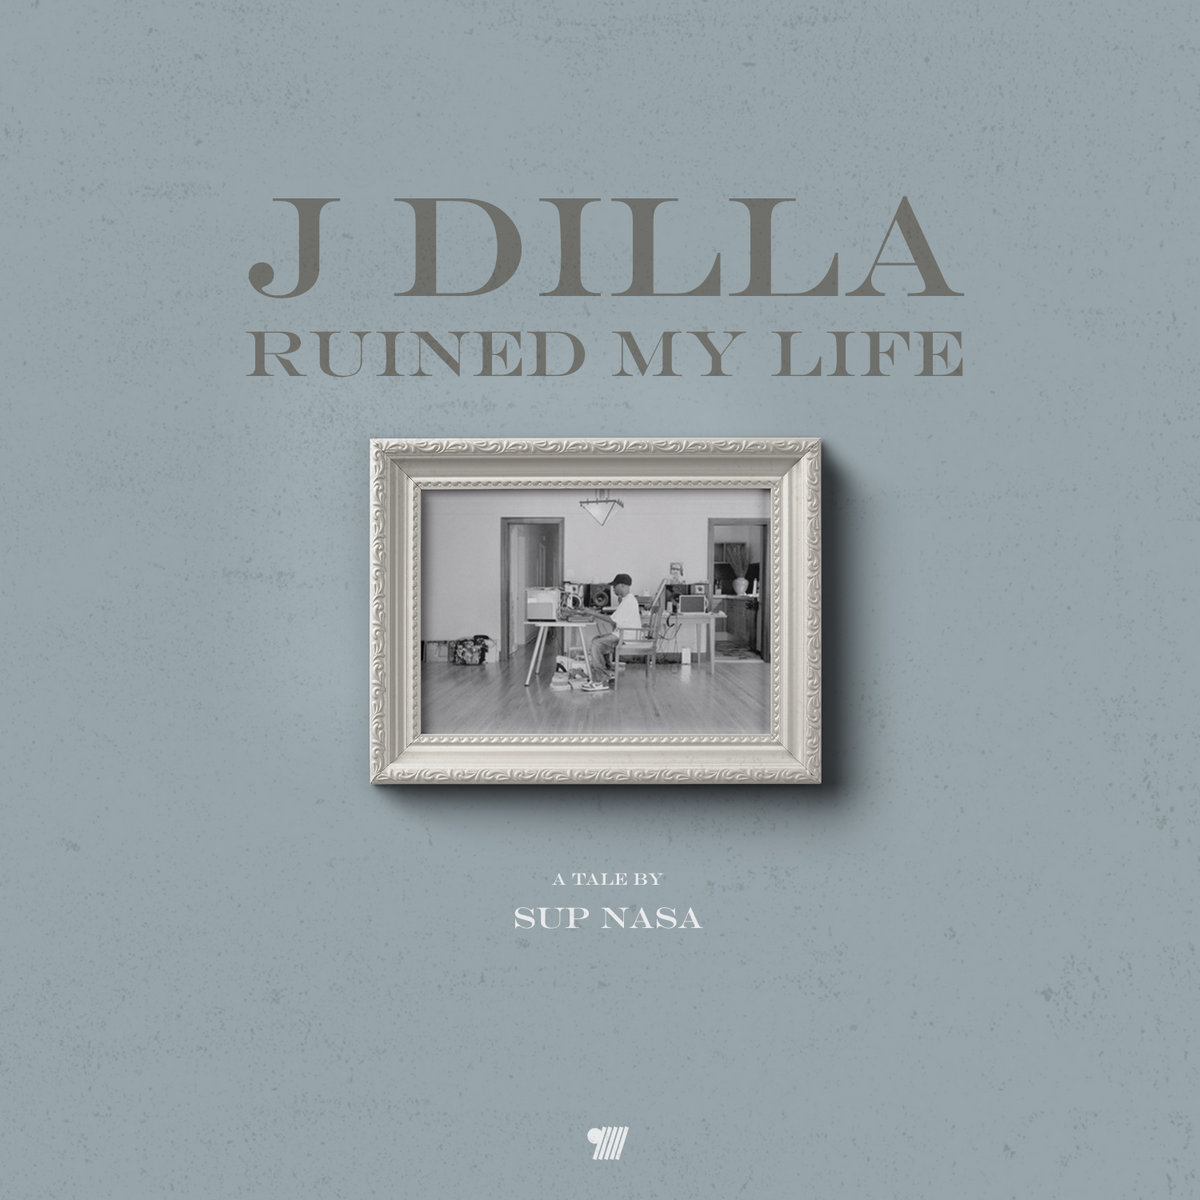 J Dilla ruined my life | Sup Nasa